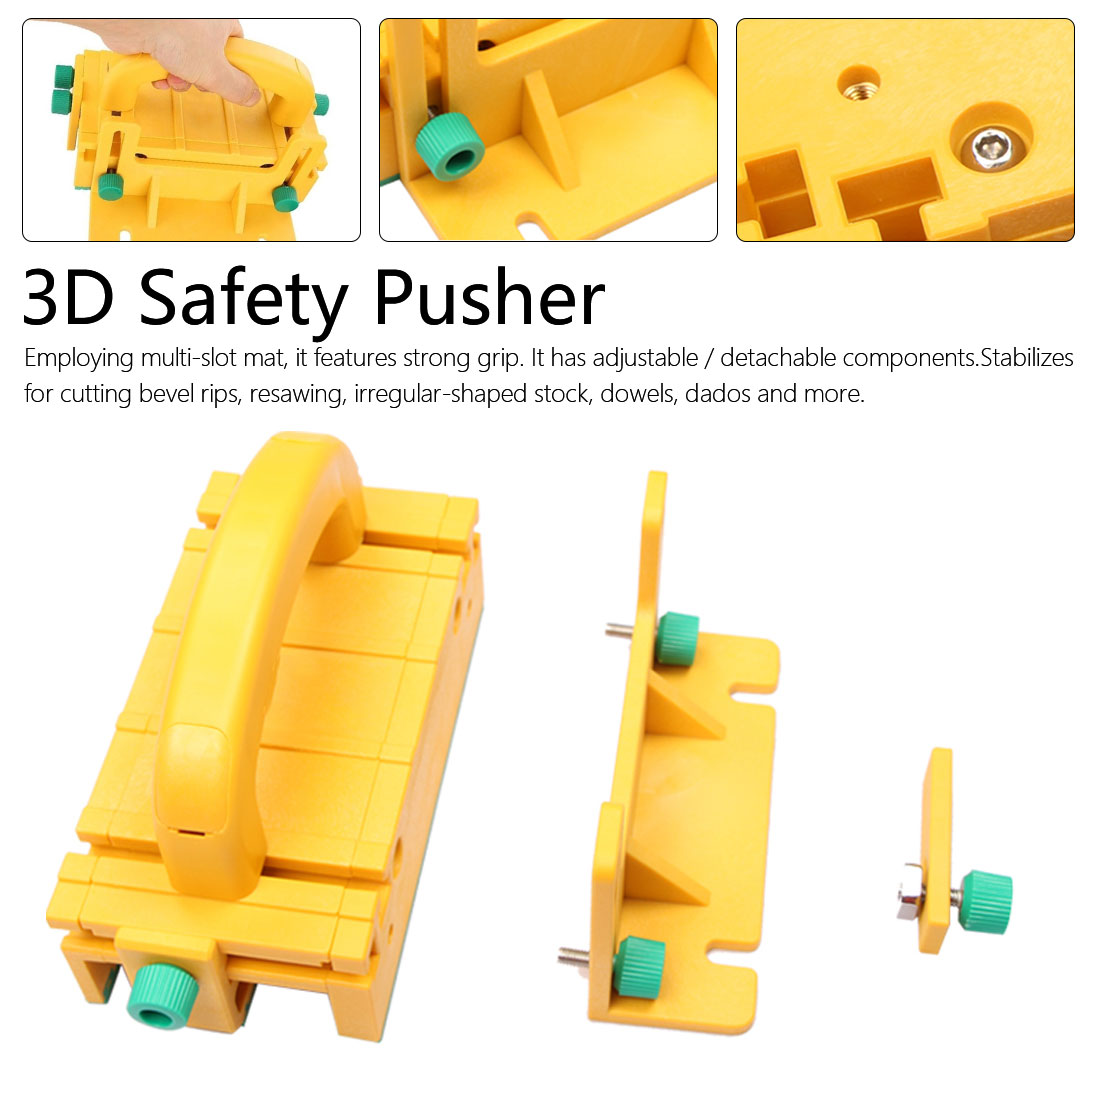 3D Safety Pusher Woodworking Flip Table Saw Vertical Milling Planer Saw Pusher Safety Feeder